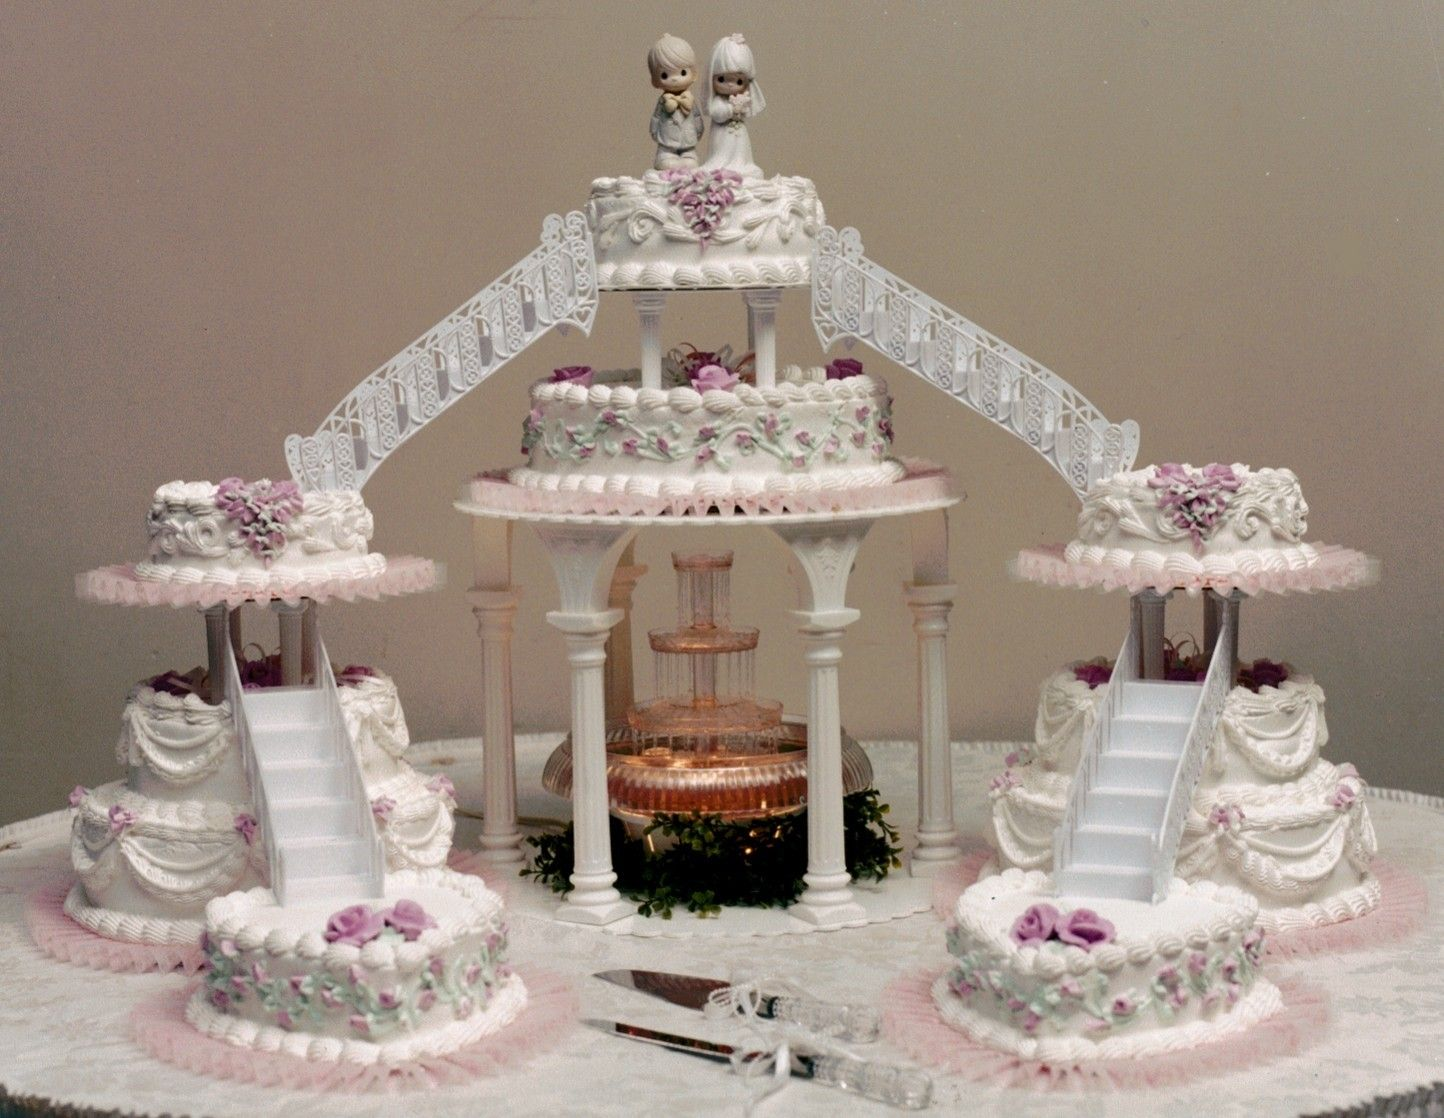 Heart Shaped Wedding Cakes With Fountain Fountain